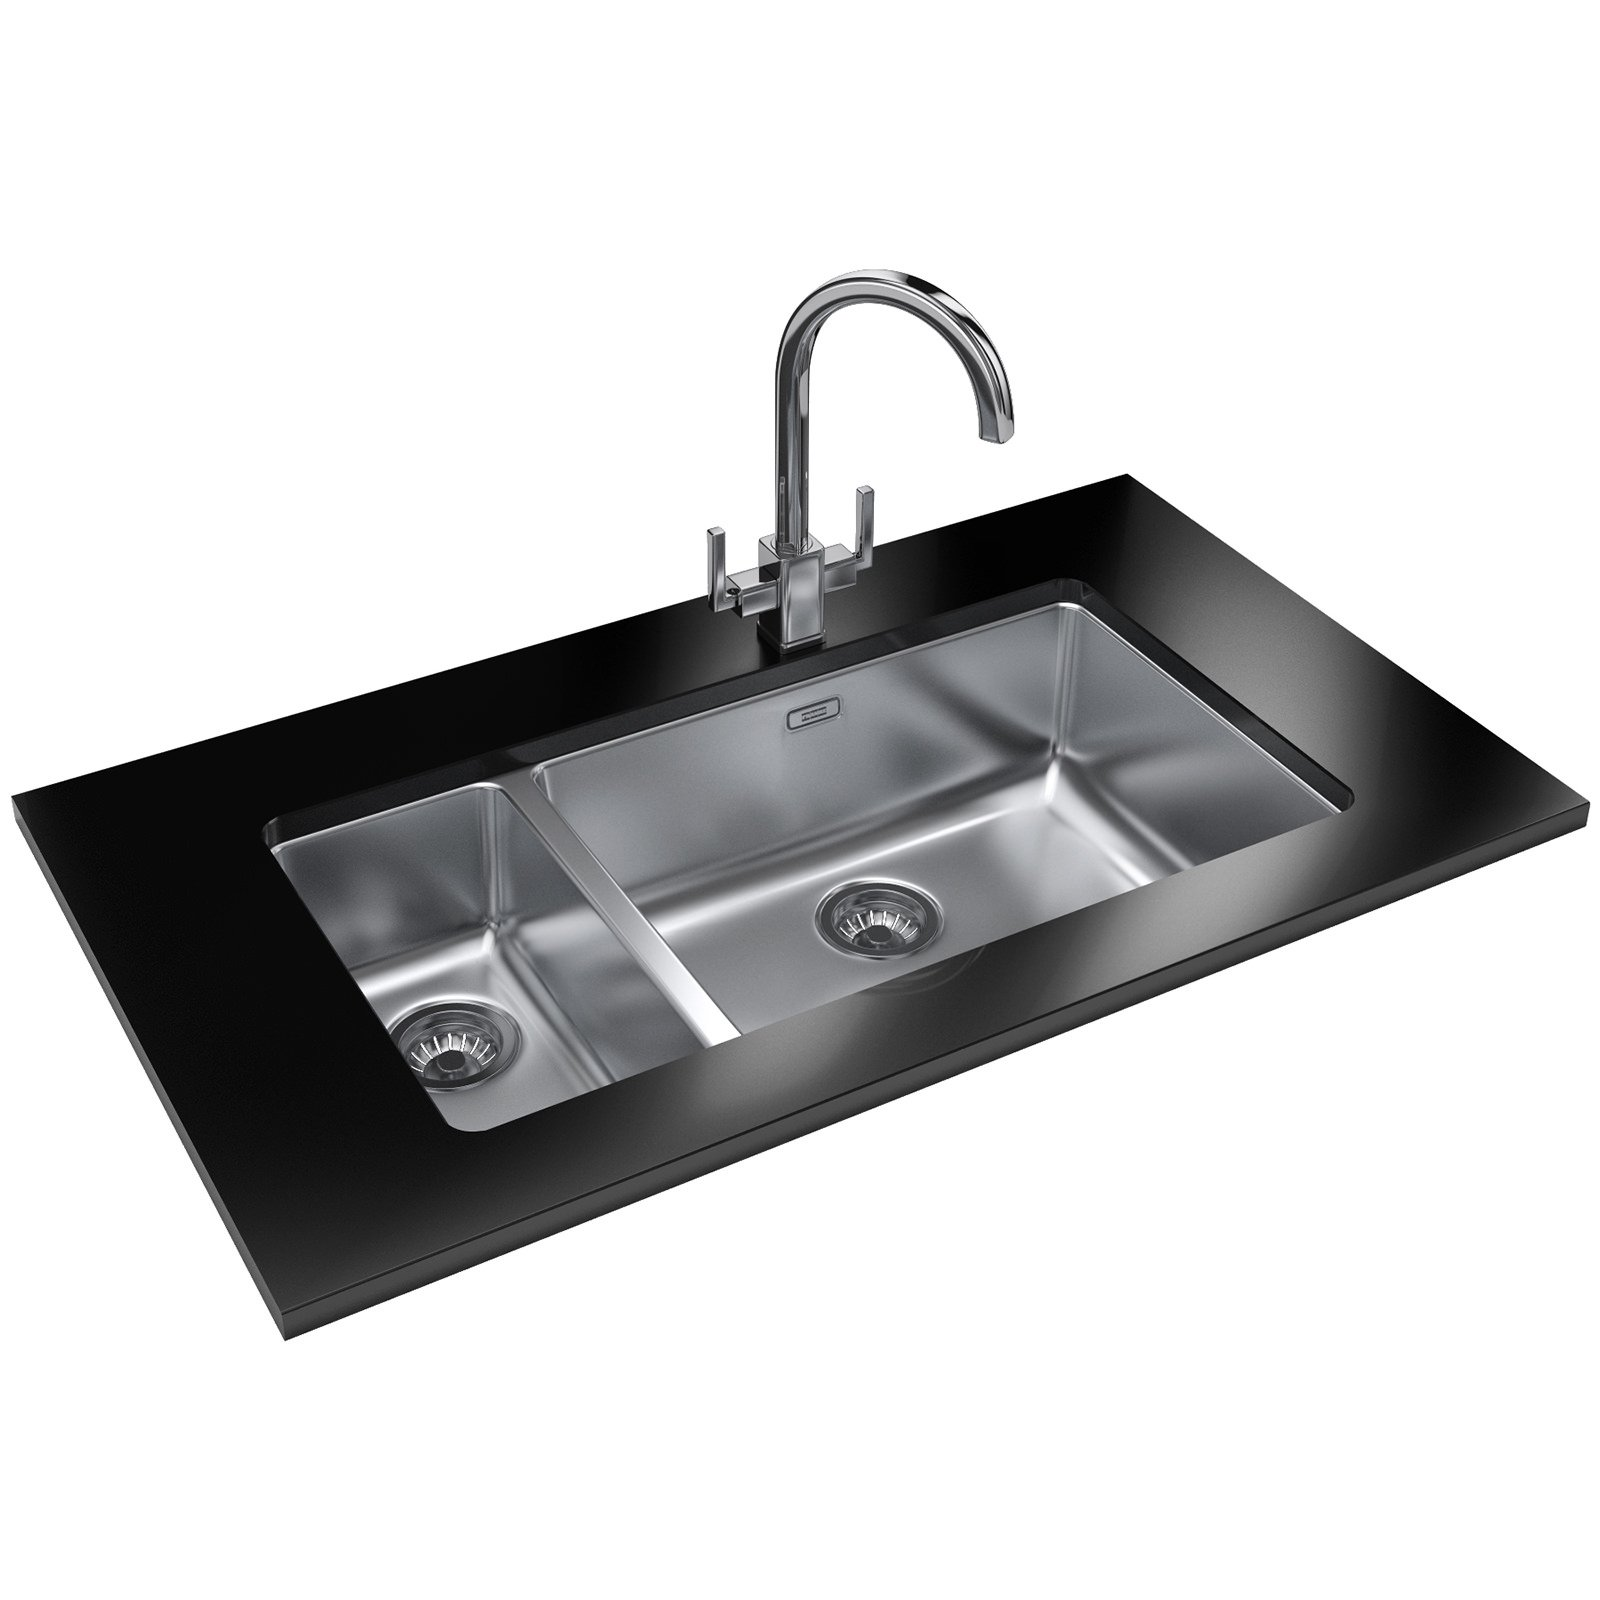 Designer Stainless Steel Sinks : ... Kubus KBX 160 55-20 Designer Pack - Stainless Steel Sink And Tap